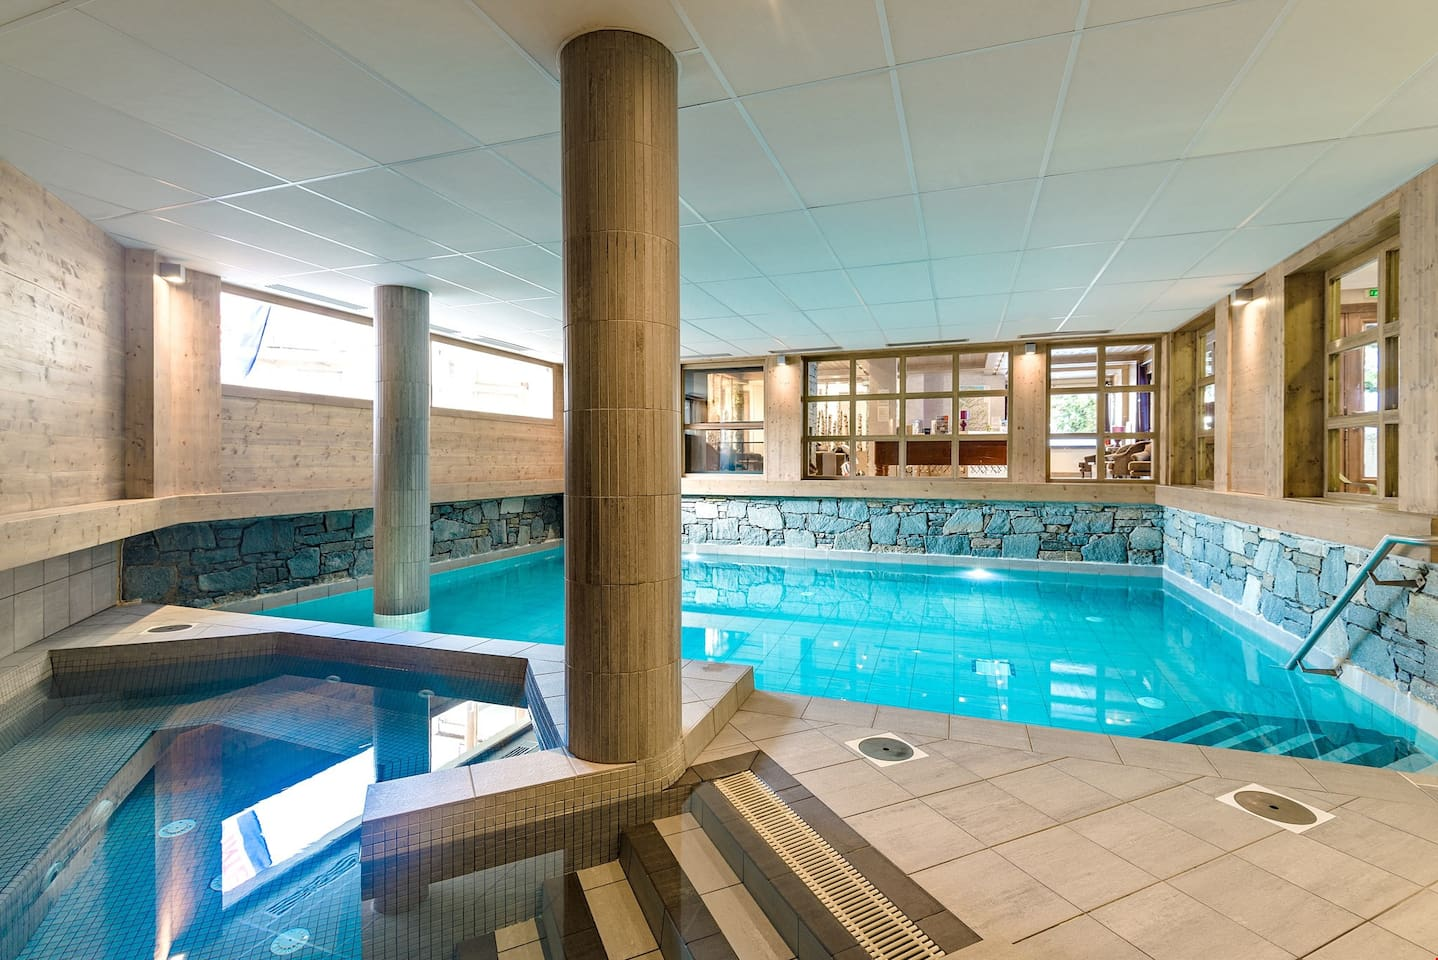 Dive into the lovely indoor pool after a great day!